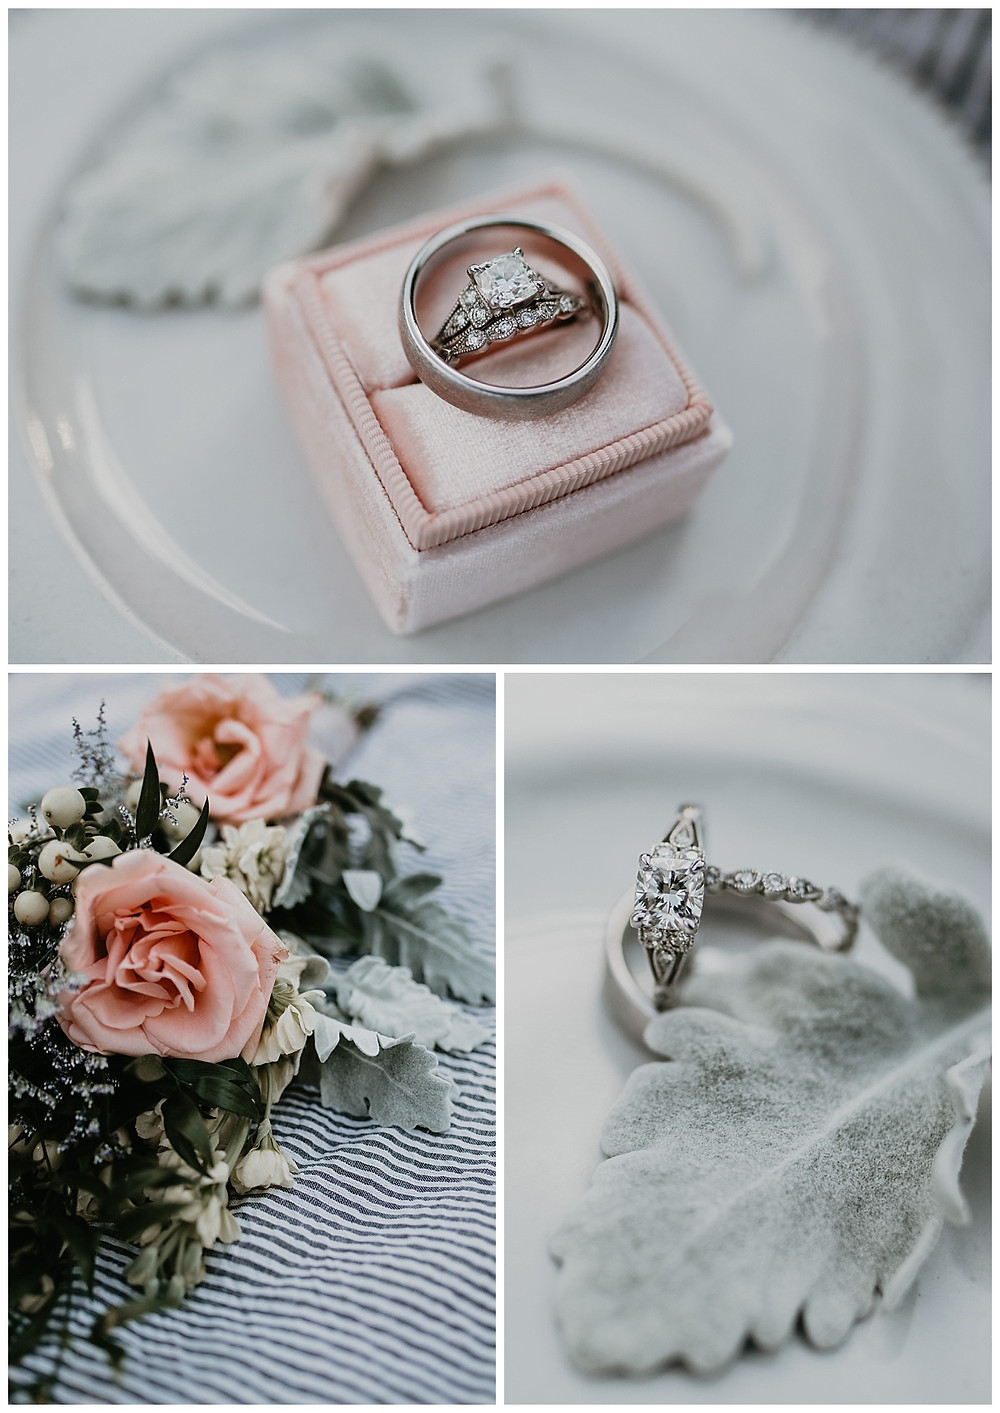 Bridal Details Wedding Ring in Pink Velvet Ring Box and Bouquet